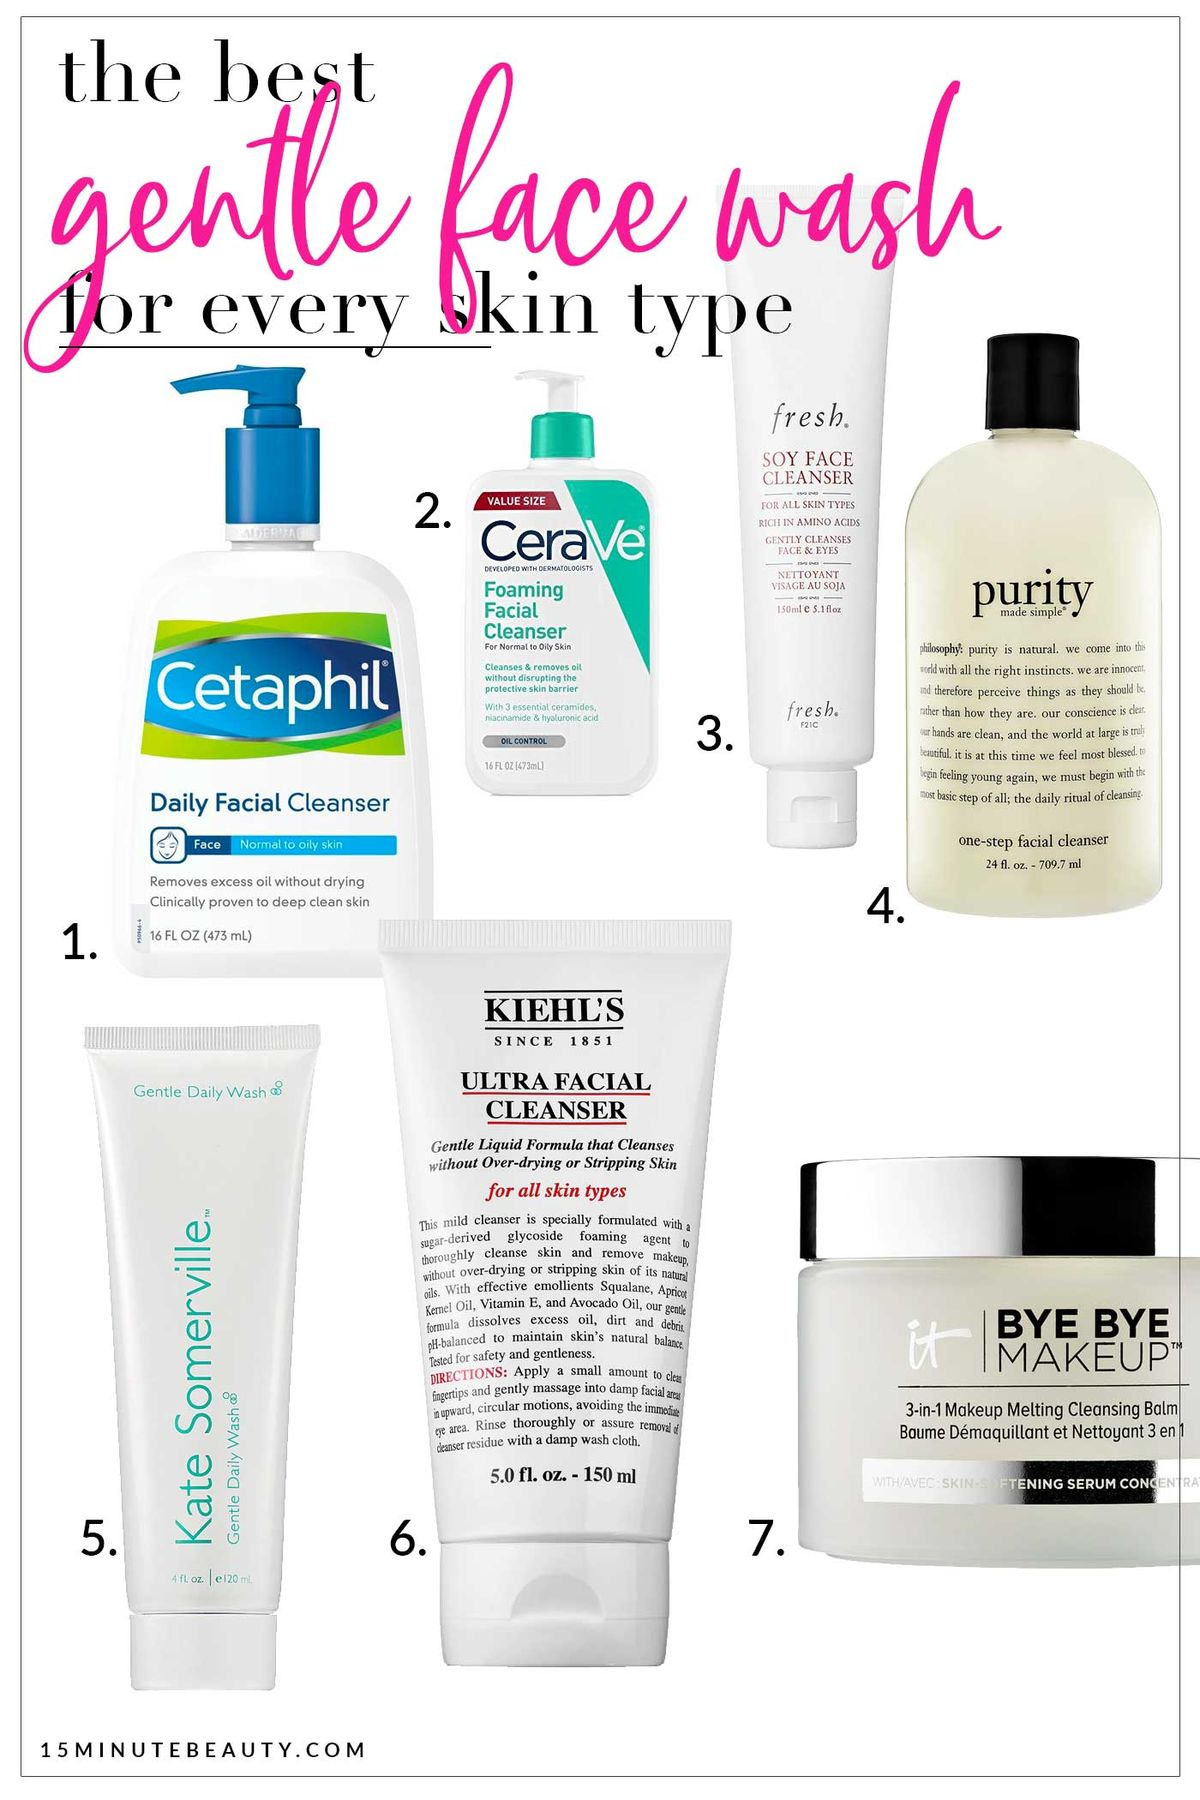 The favorite gentle face washes of dermatologists